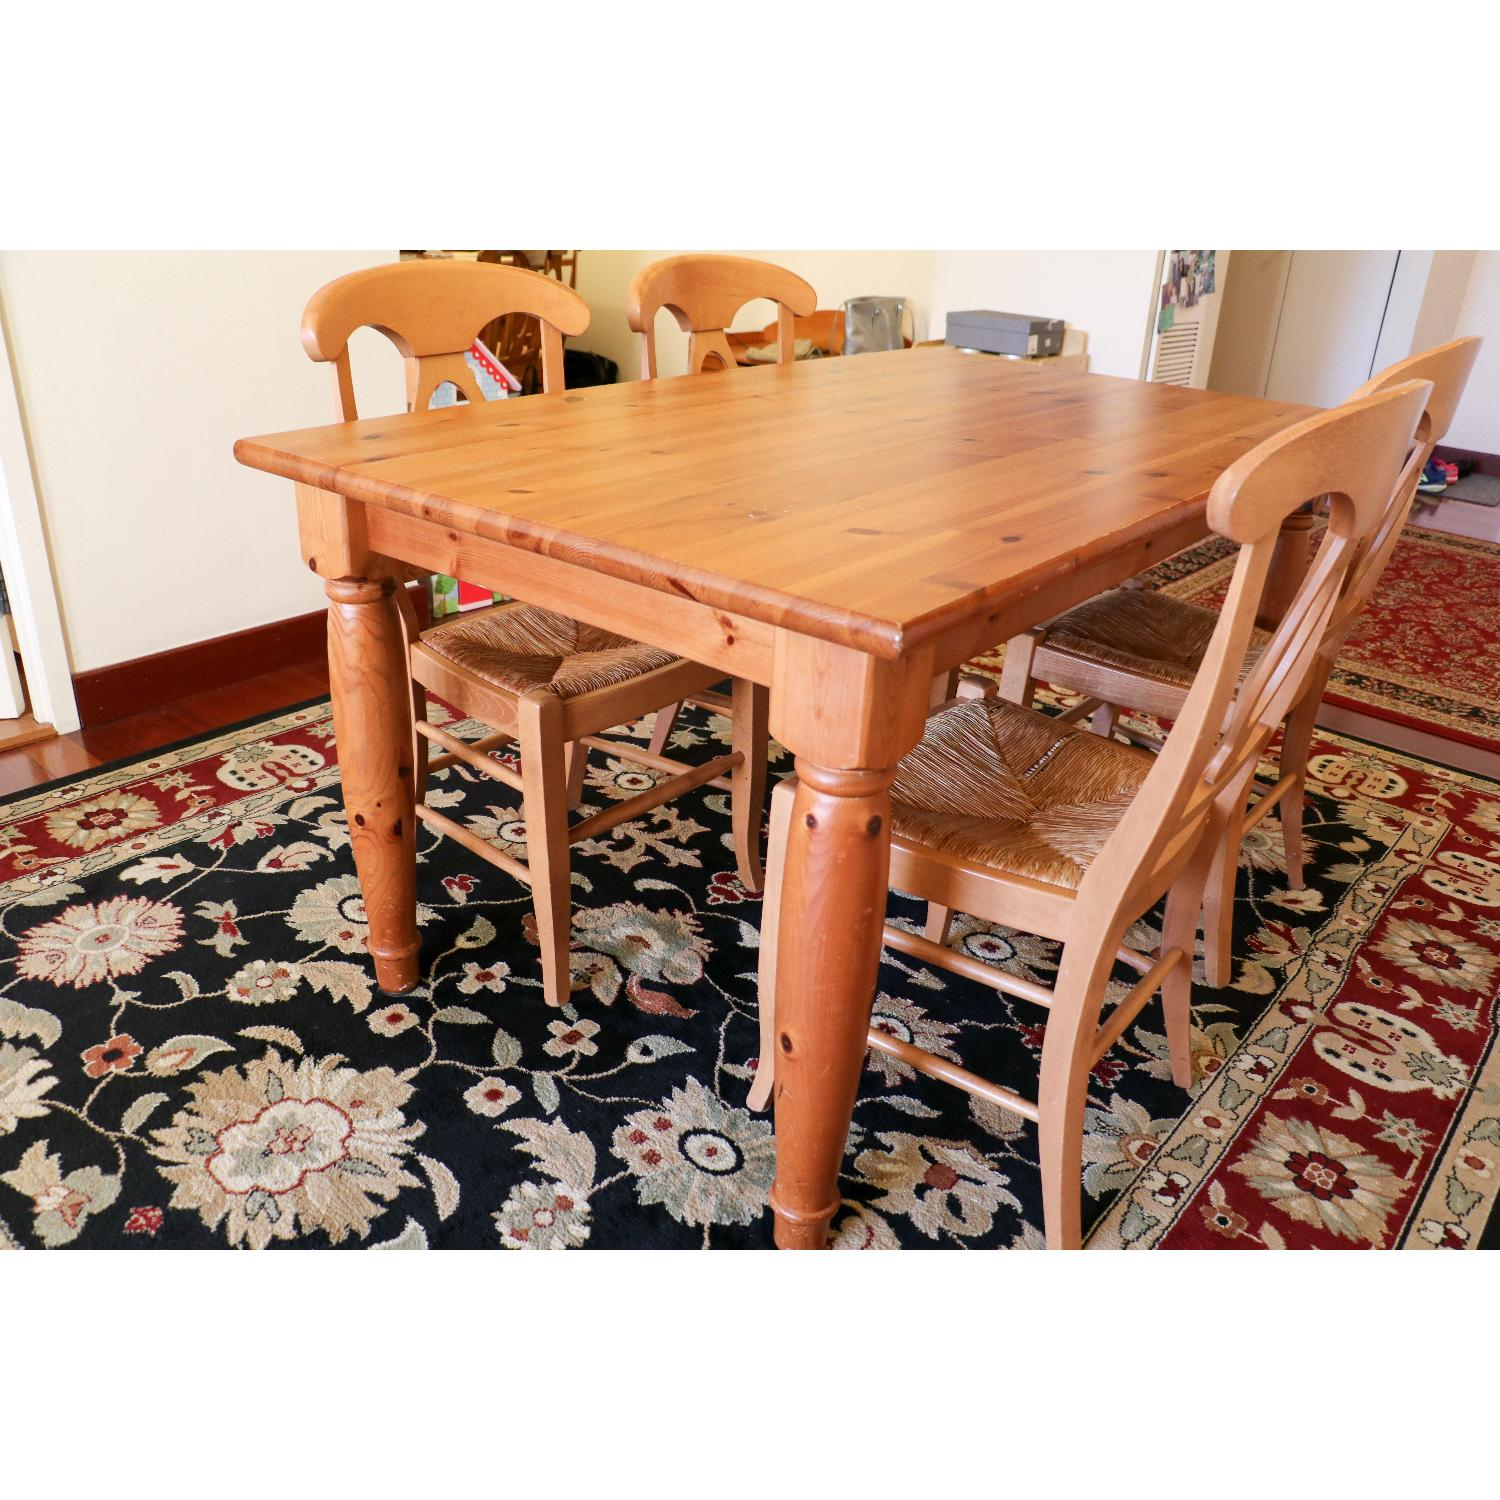 Pottery Barn Dining Room Table w/ 4 Chairs